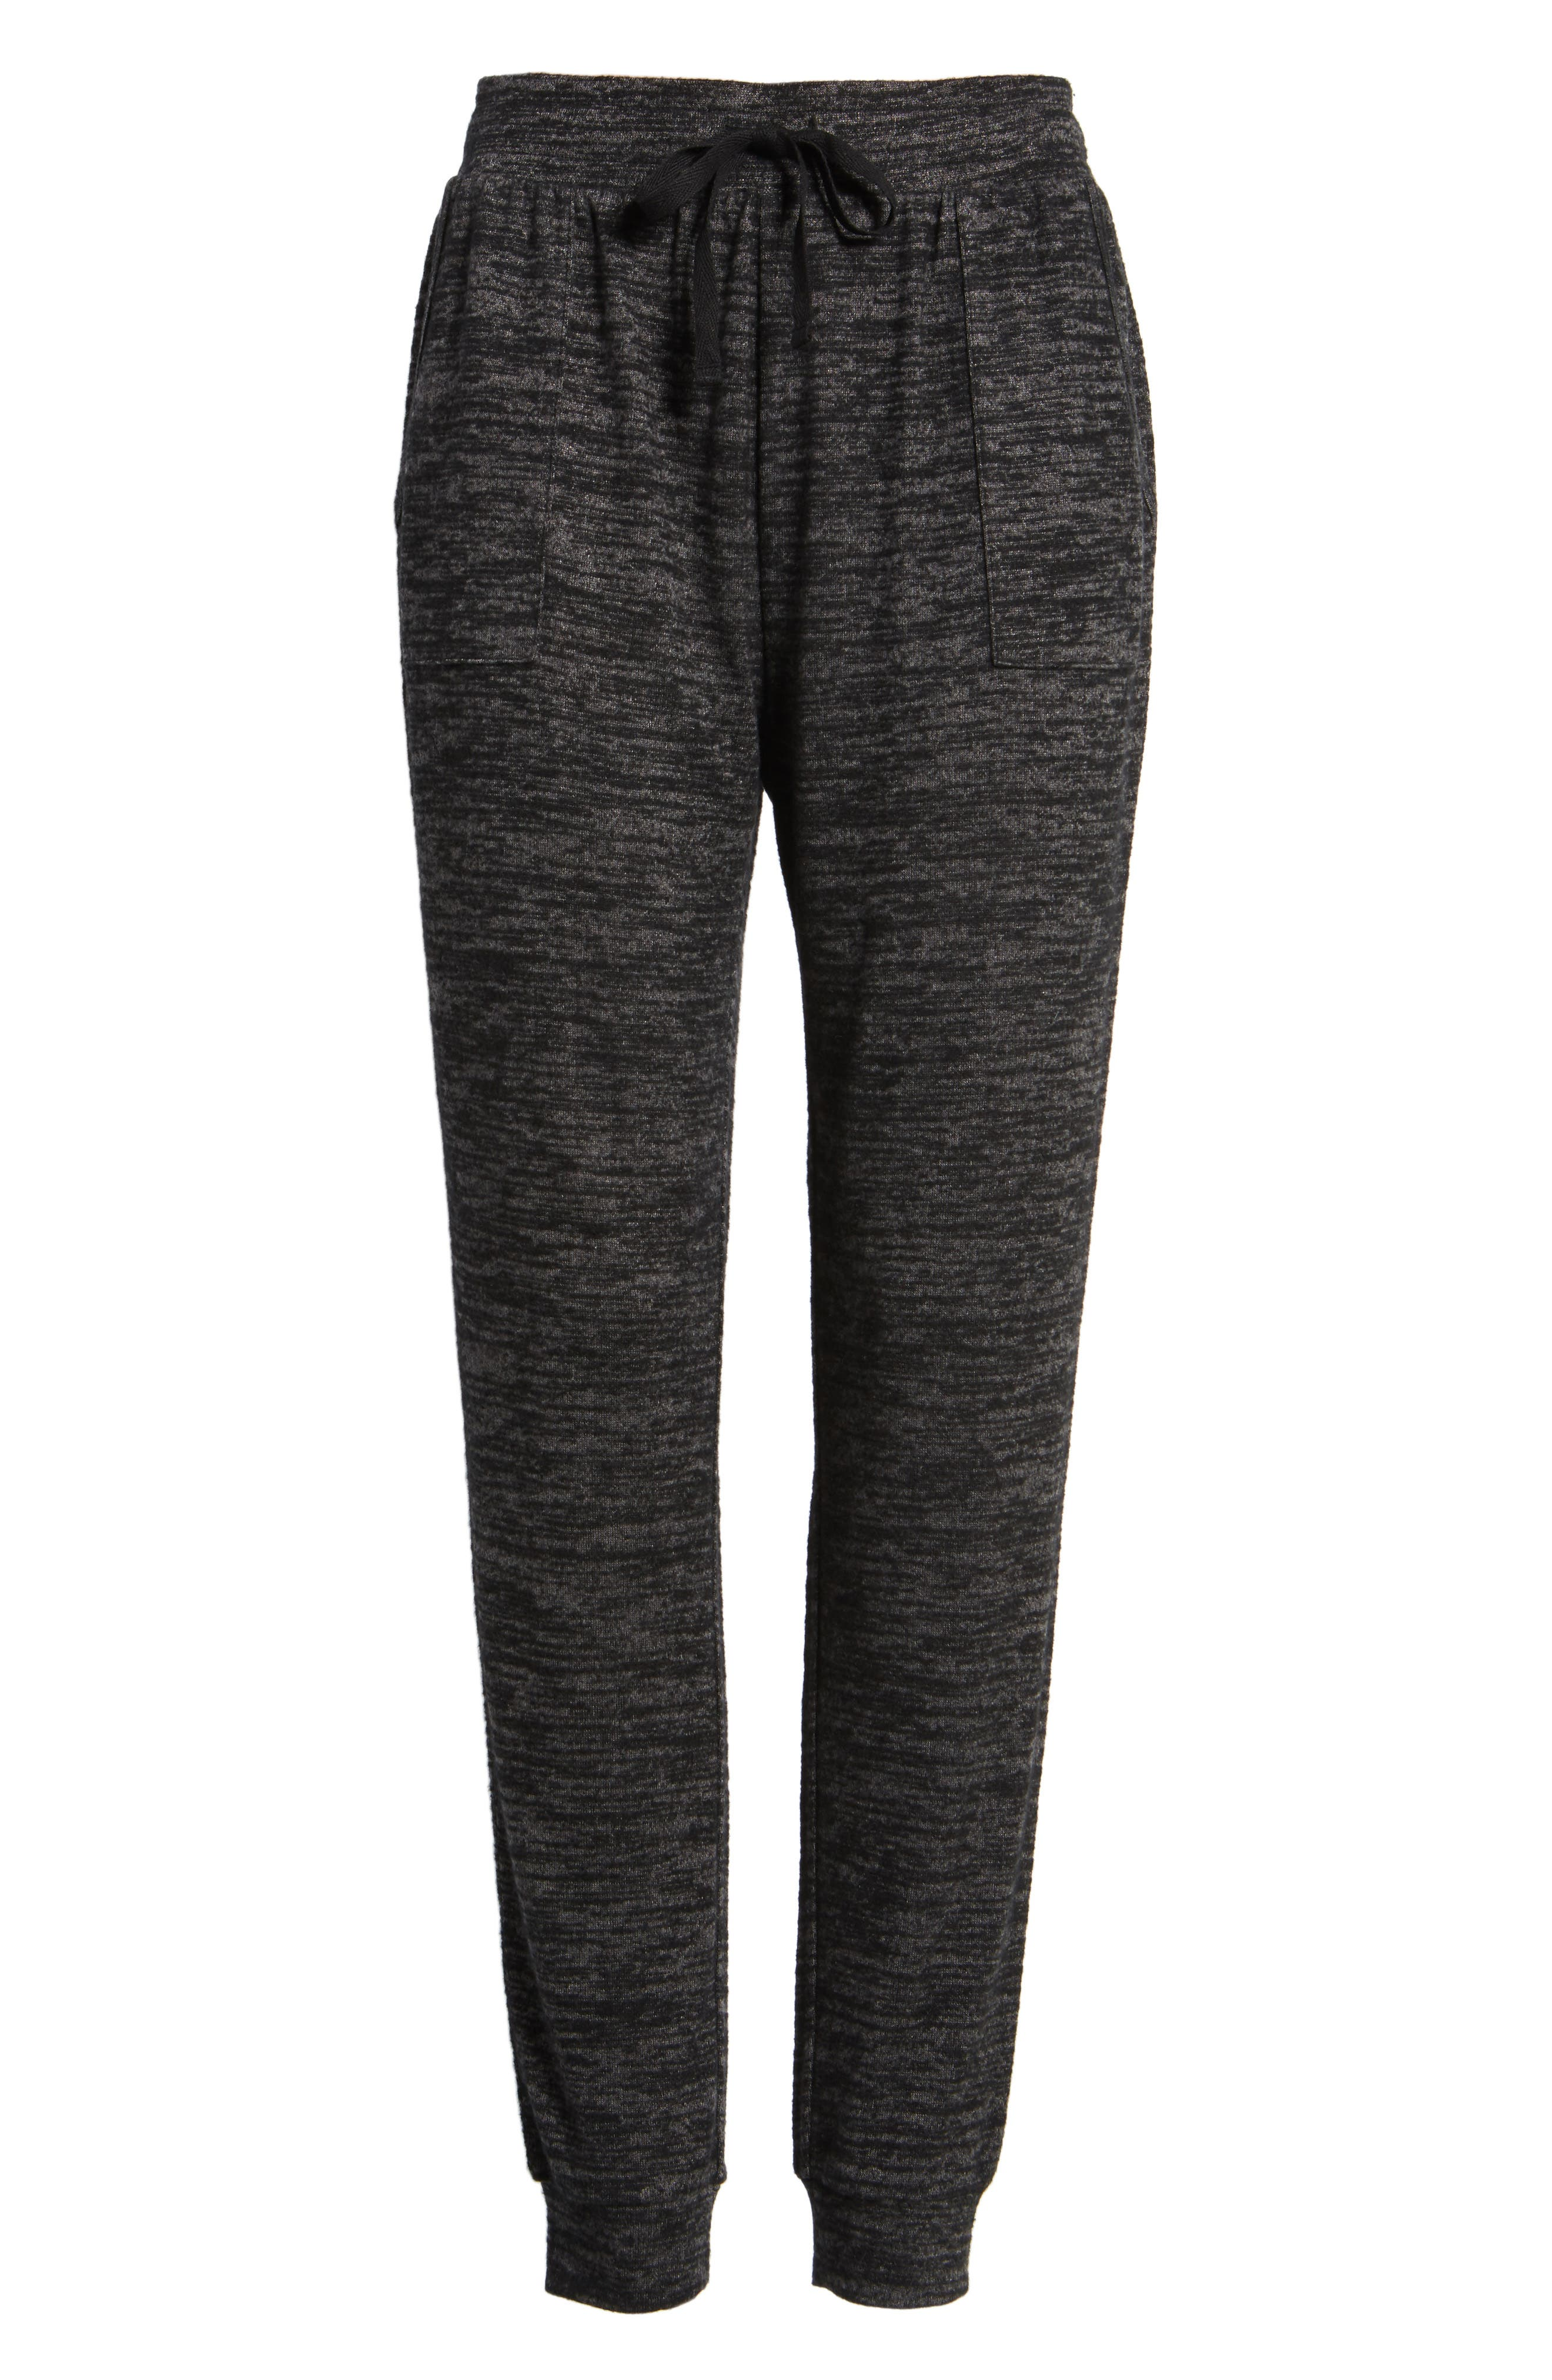 Stretch Knit Joggers,                             Alternate thumbnail 6, color,                             001